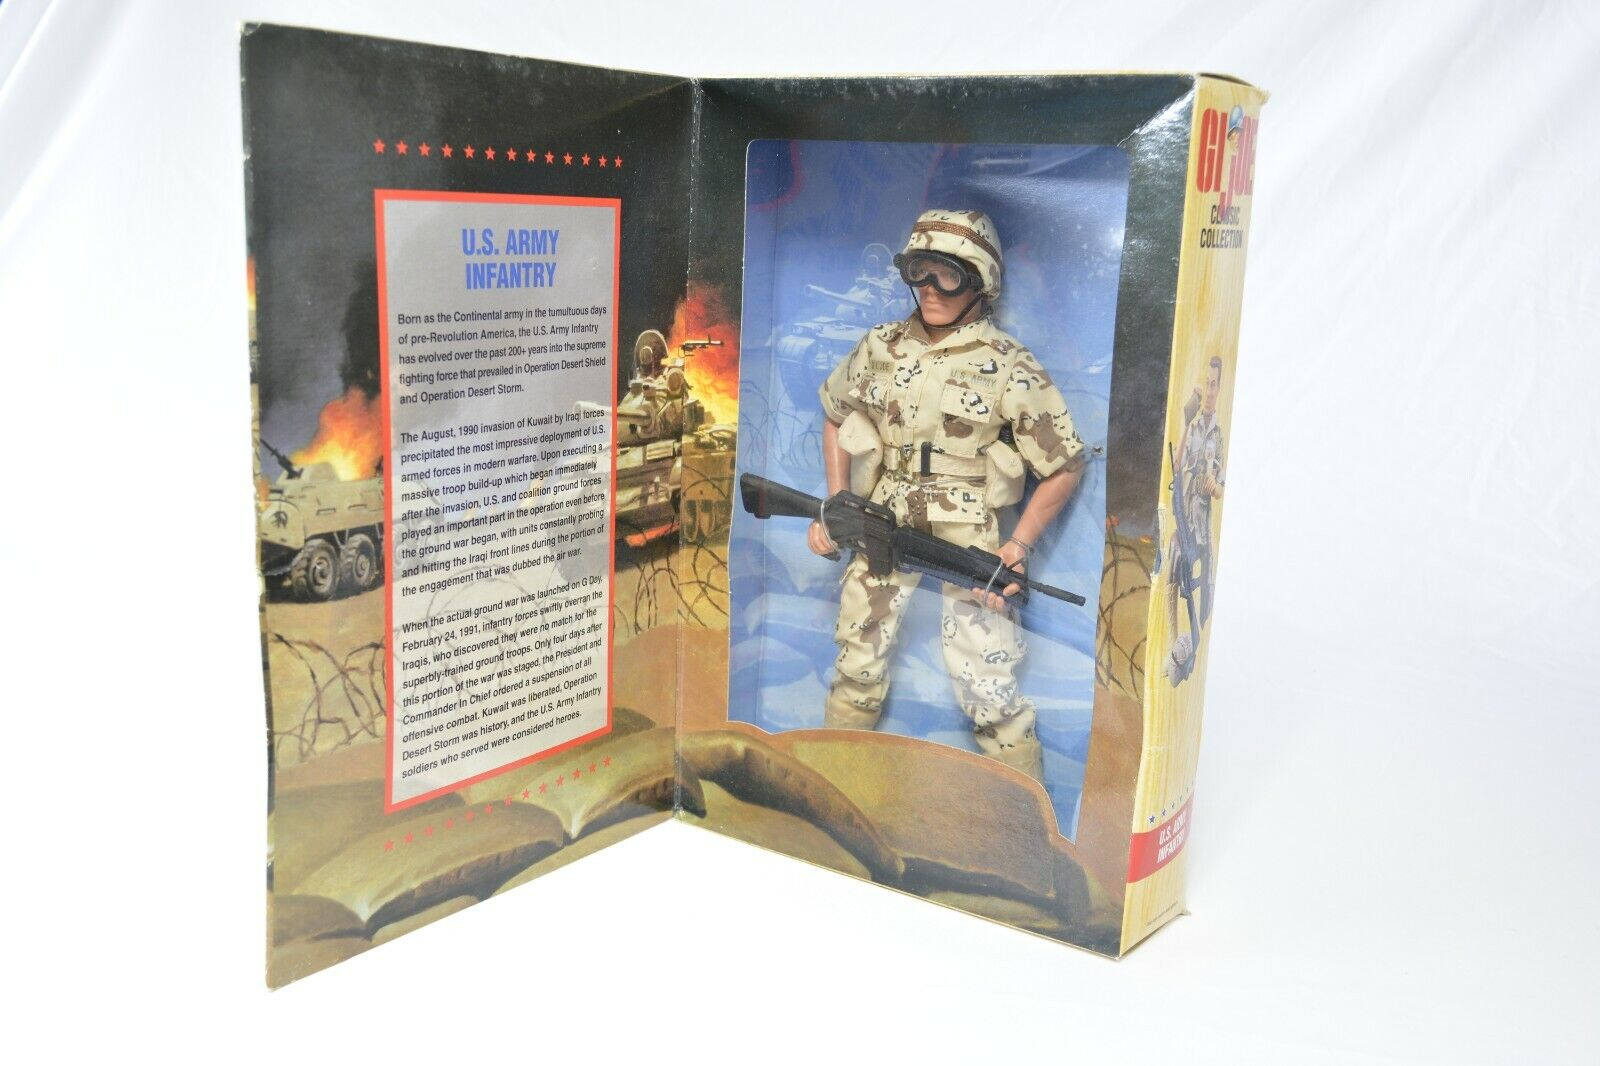 GI Joe Classic Collection U.S. Army Infantry Limited 12  Action Figure 1996